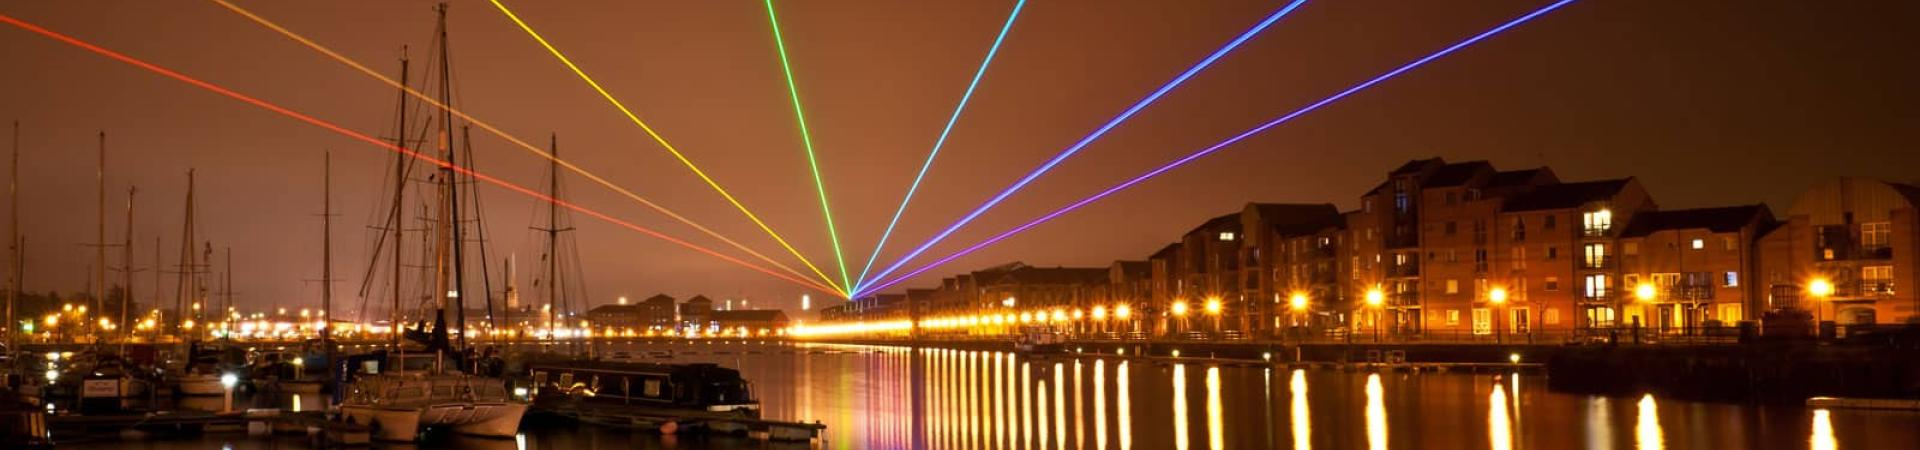 A waterside cityscape of Preston with lights in the background